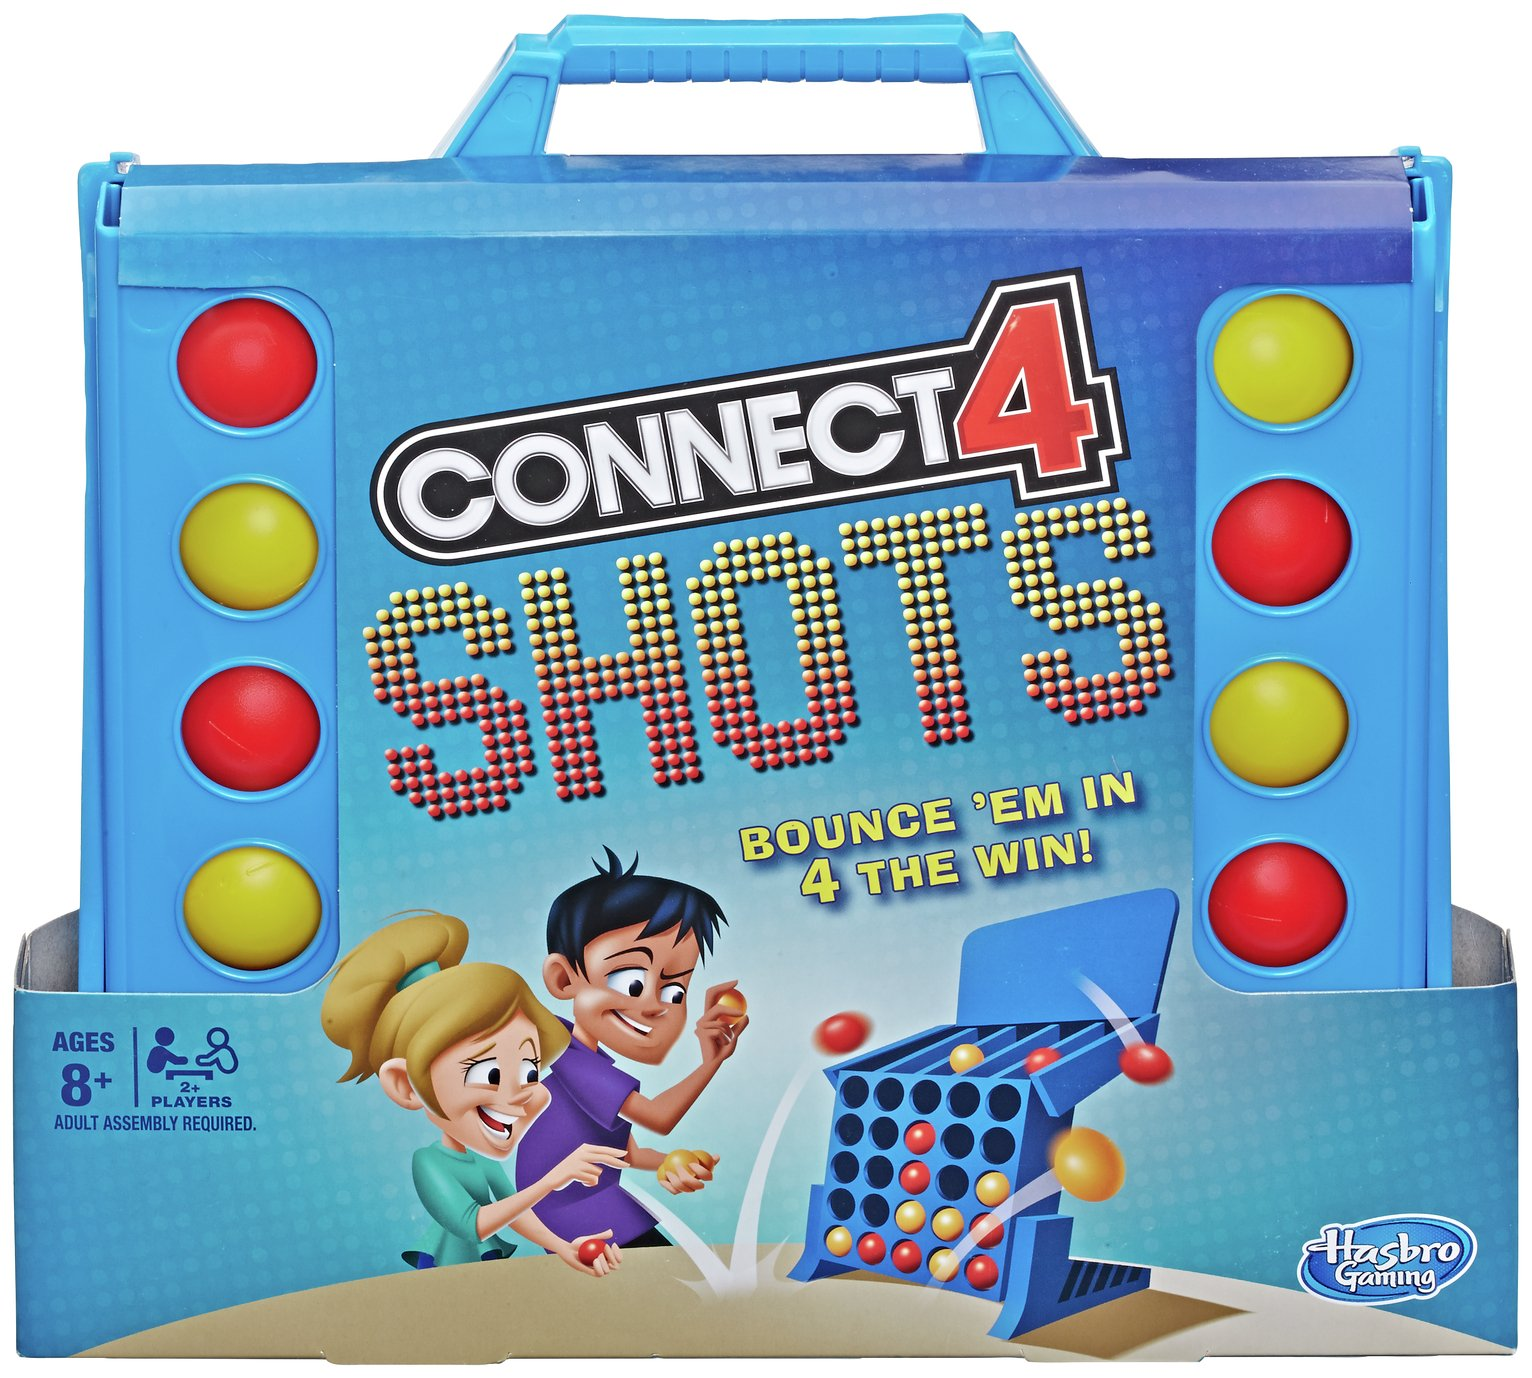 Connect 4 Shots Game from Hasbro Gaming